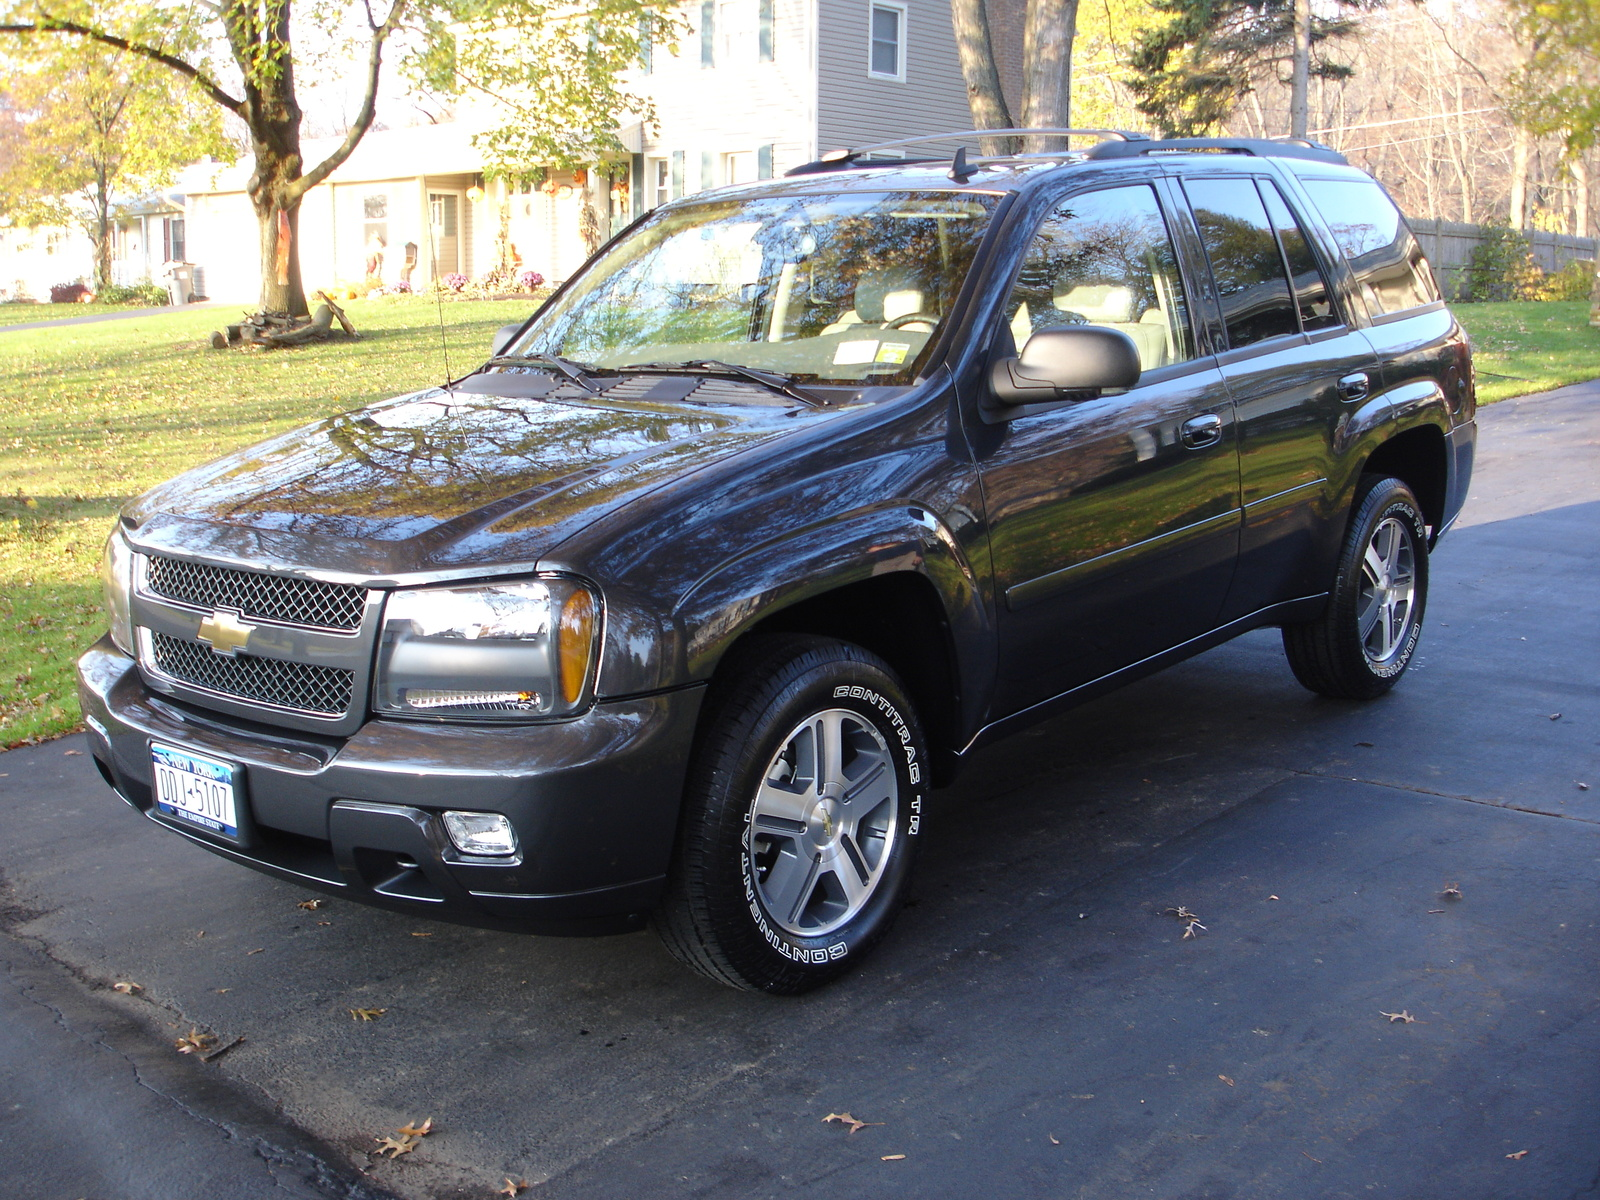 Picture of 2007 chevrolet trailblazer lt 4wd exterior